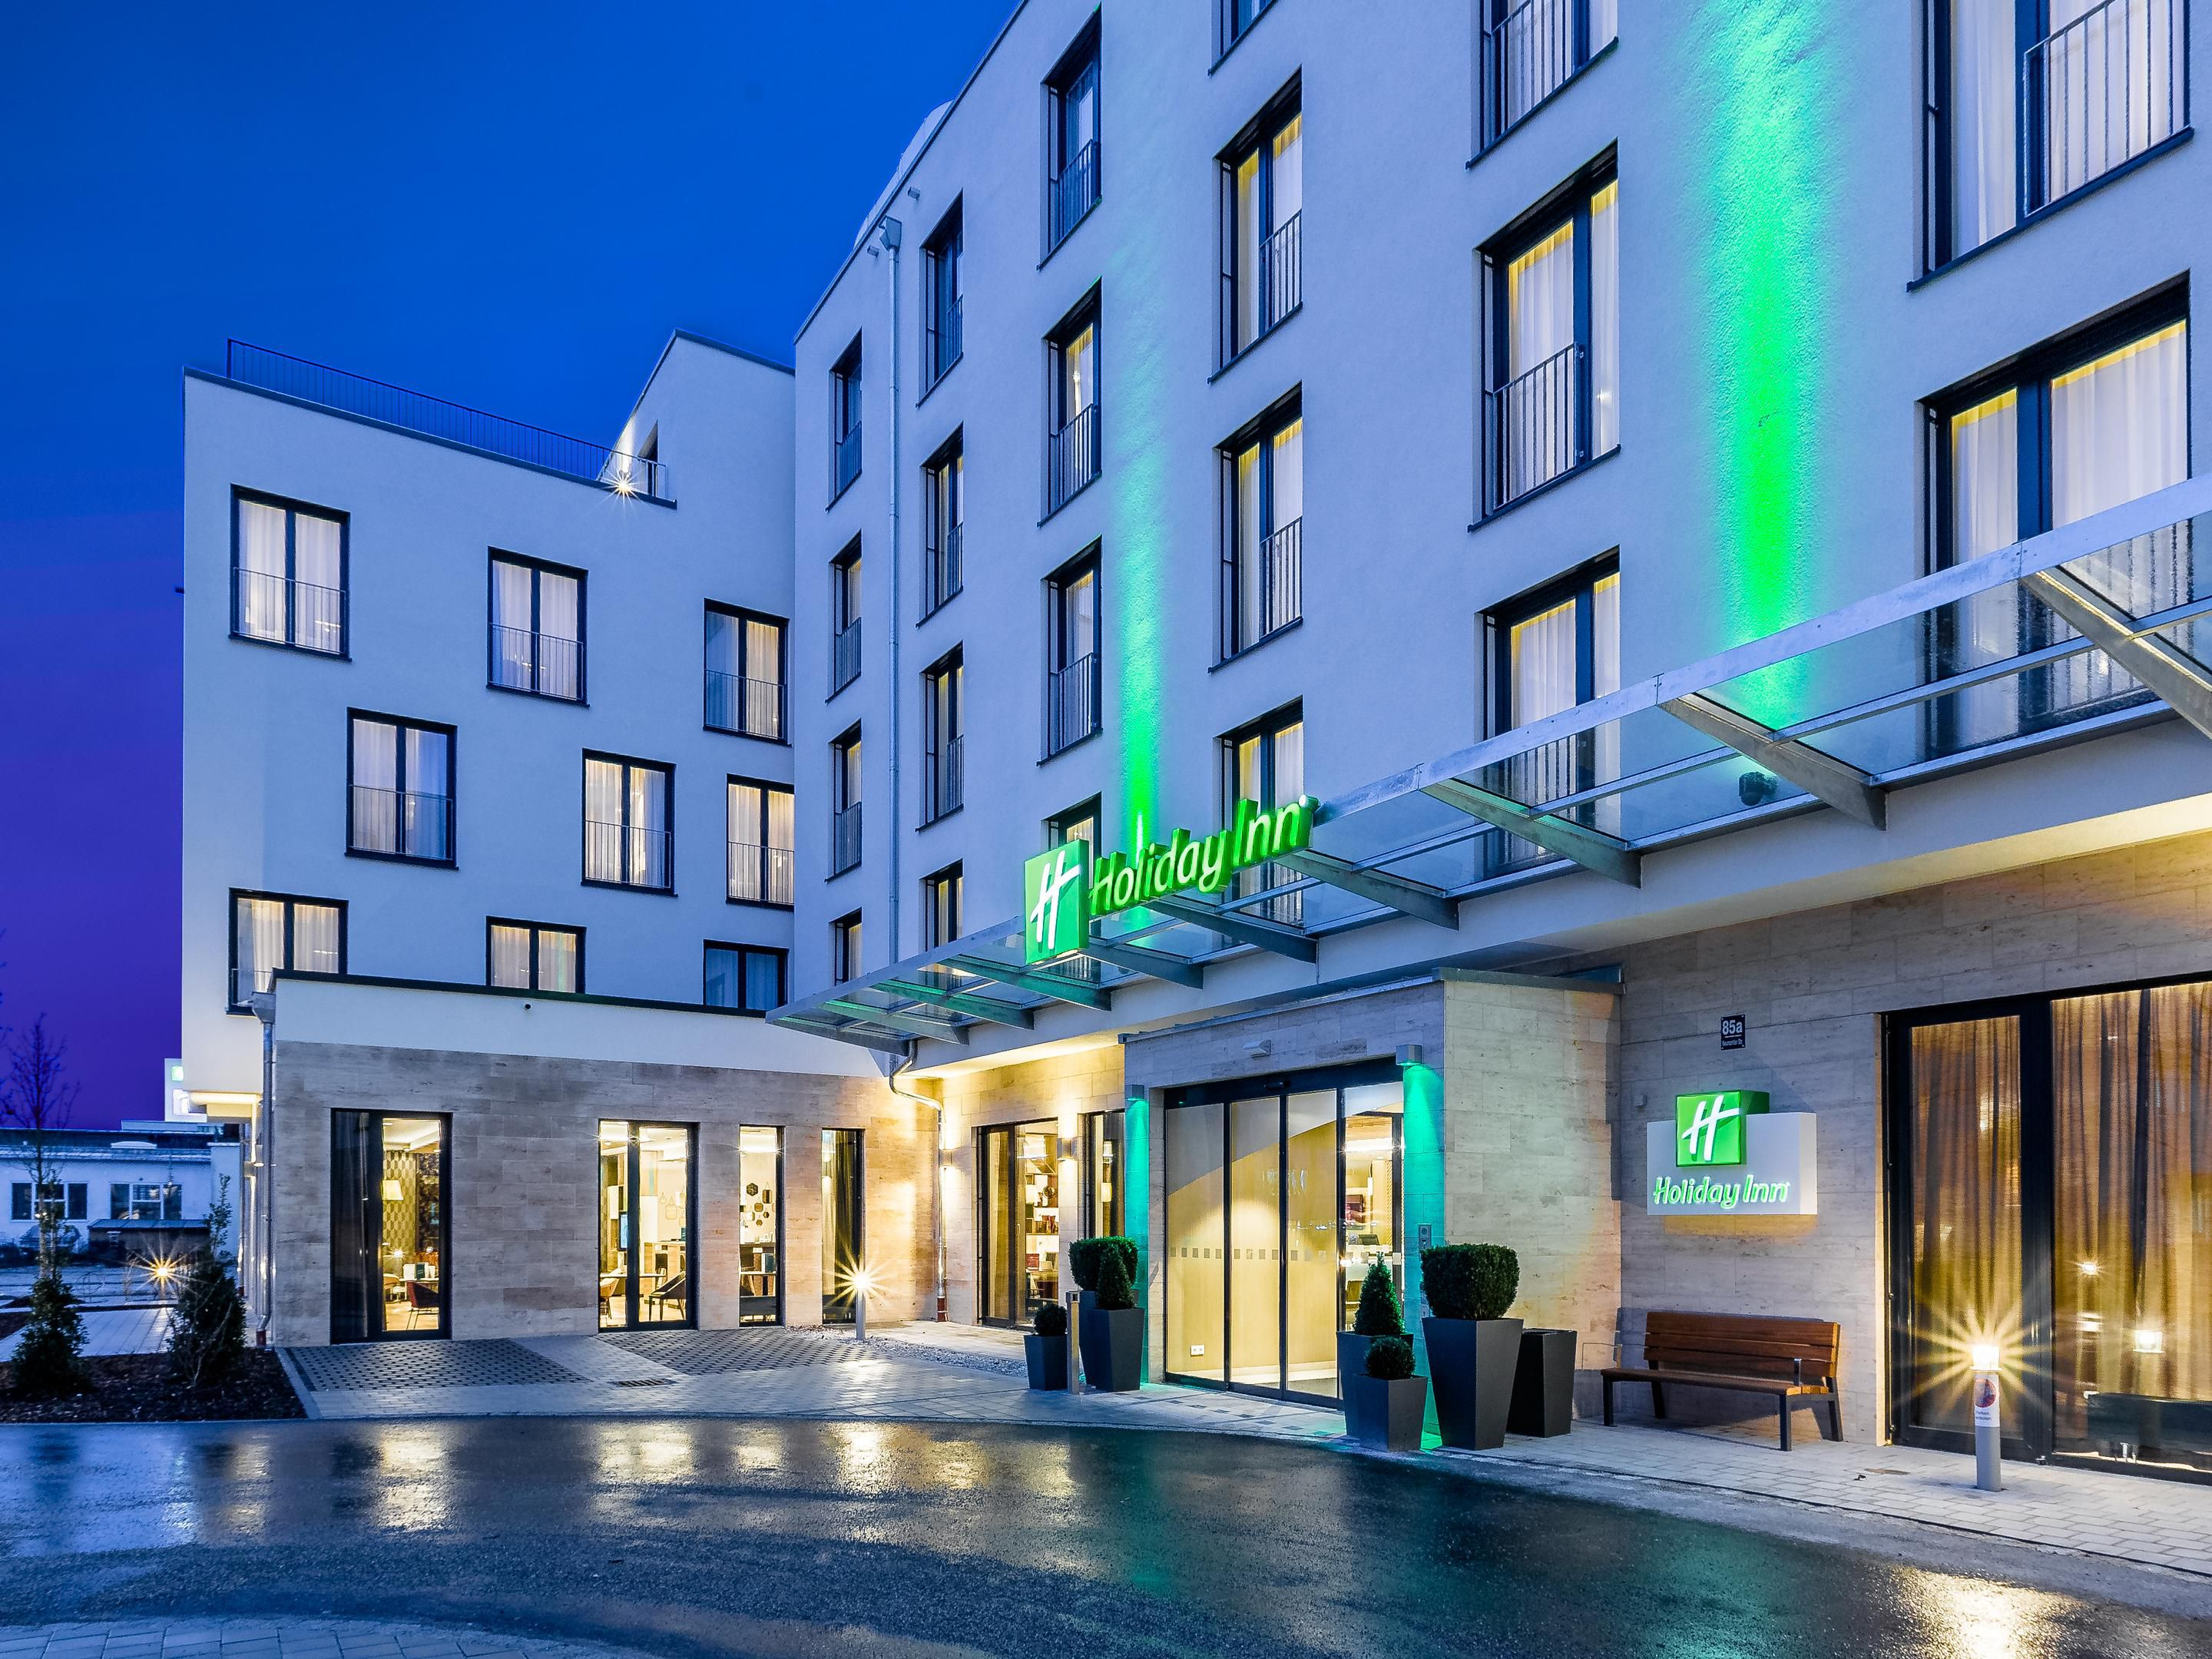 Details about the eight new IHG hotels coming to Germany revealed